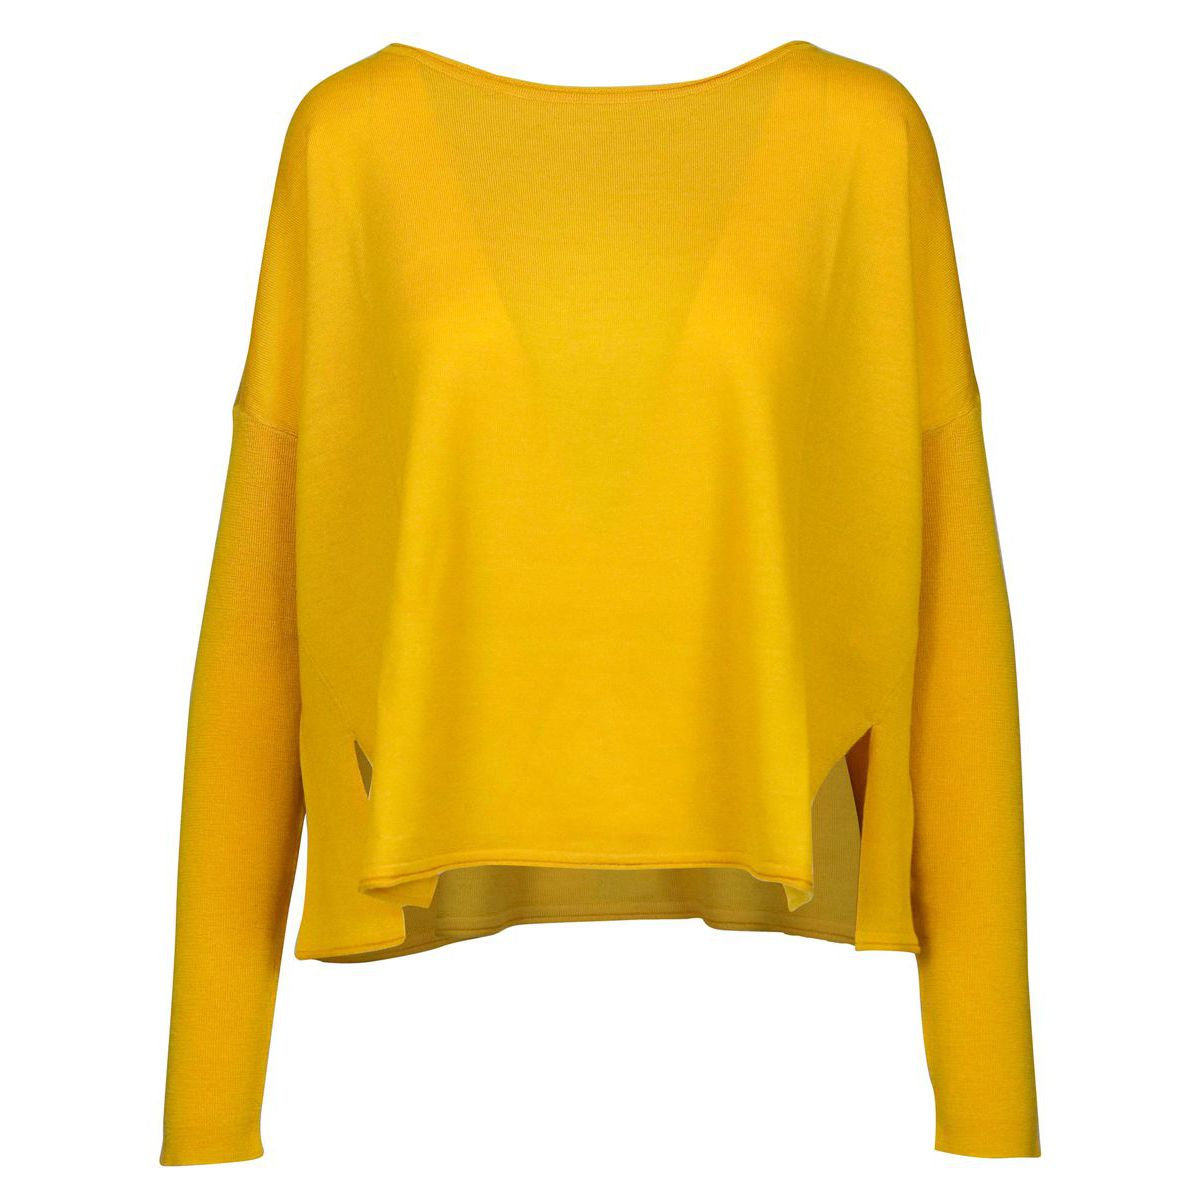 Wool crew neck sweater with side slits Yellow Maliparmi